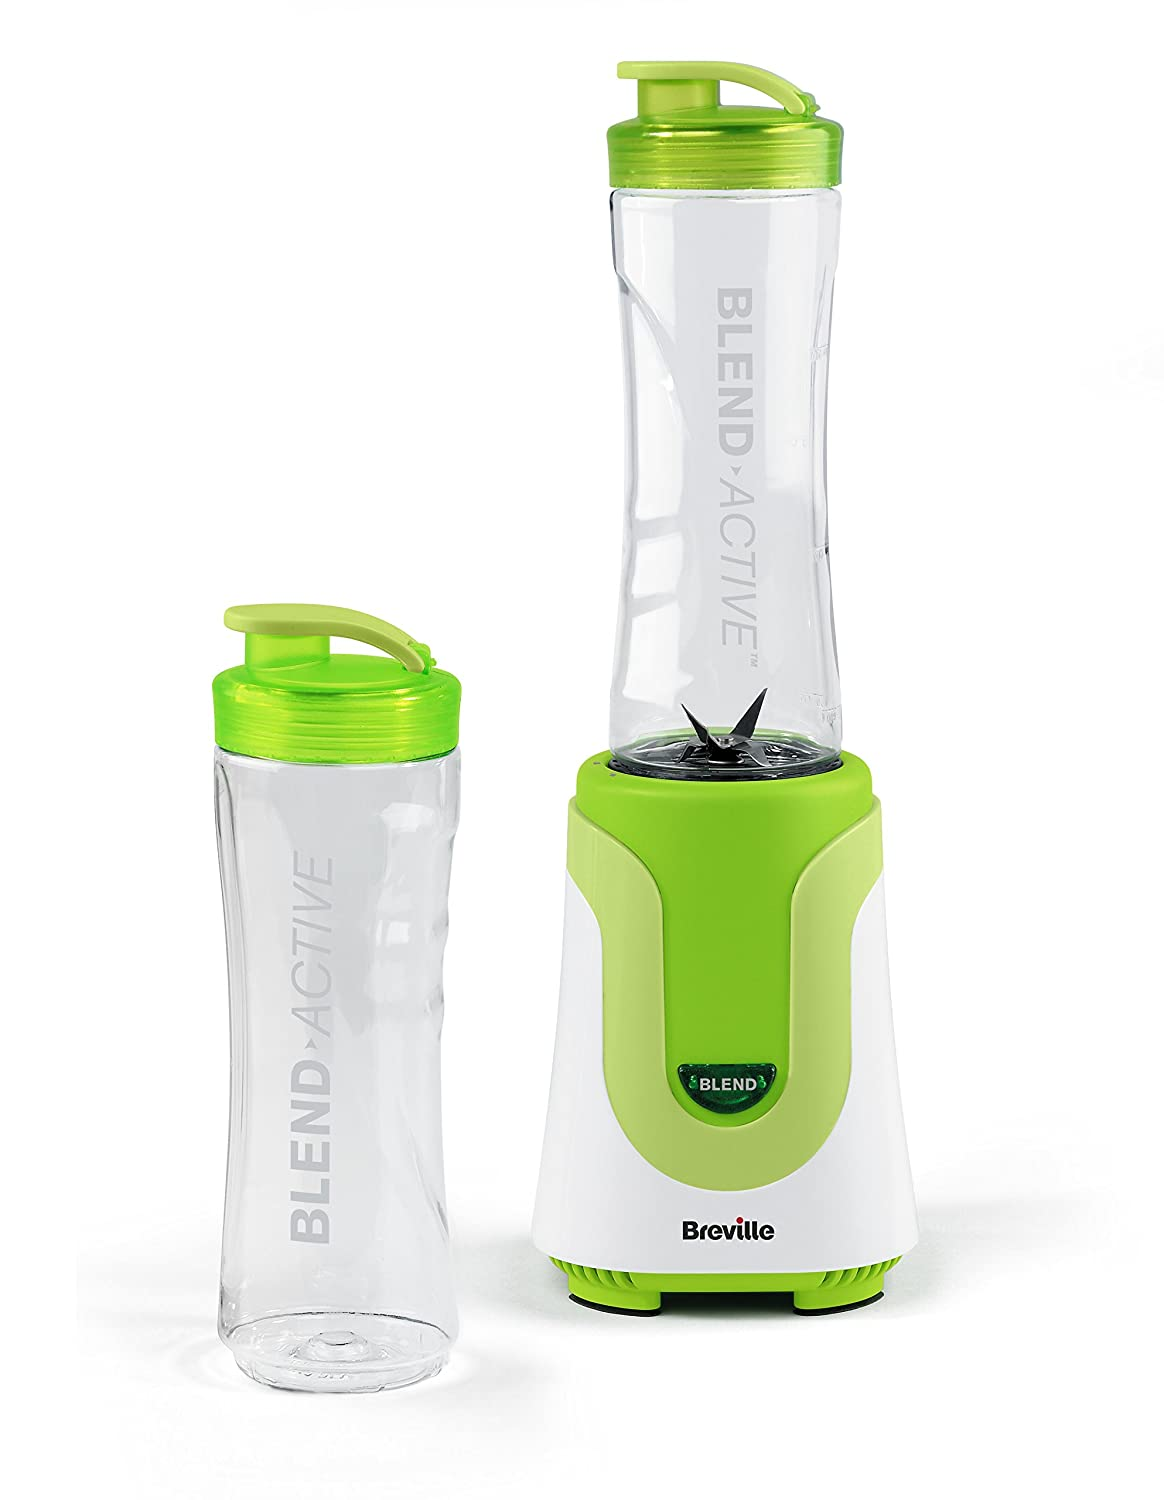 Breville VBL062 Blend Active Personal Blender, 300 W, 50Hz - White/Green